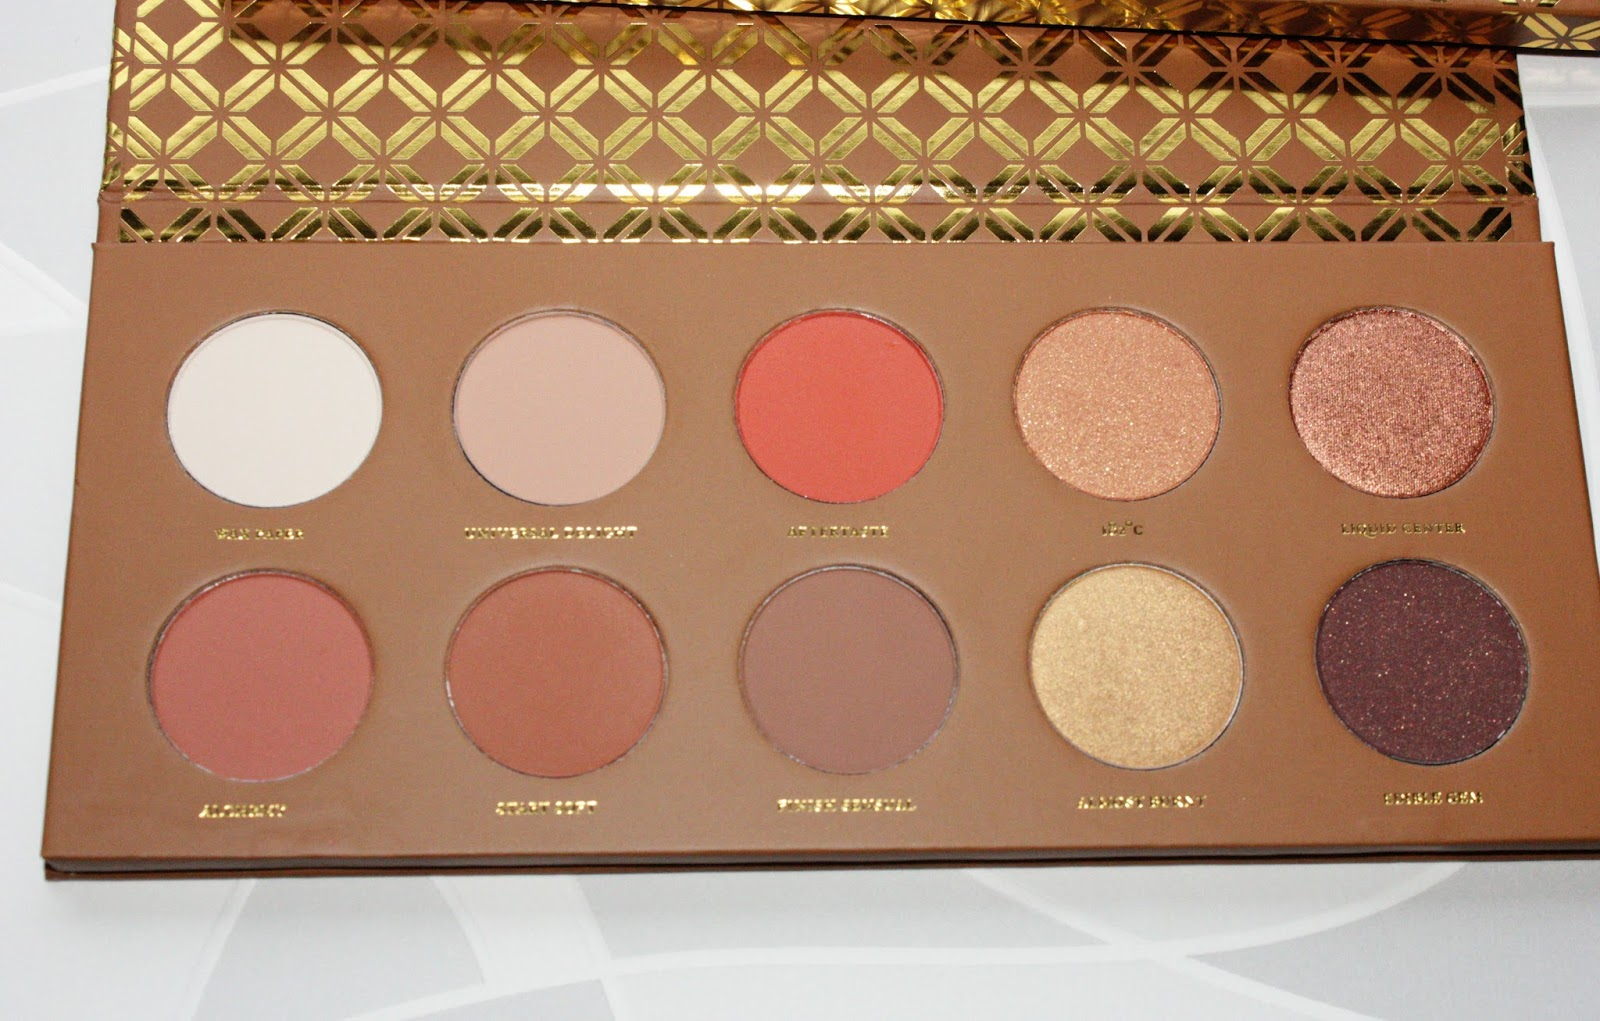 Zoeva caramel melange eyshadow palette review and swatches